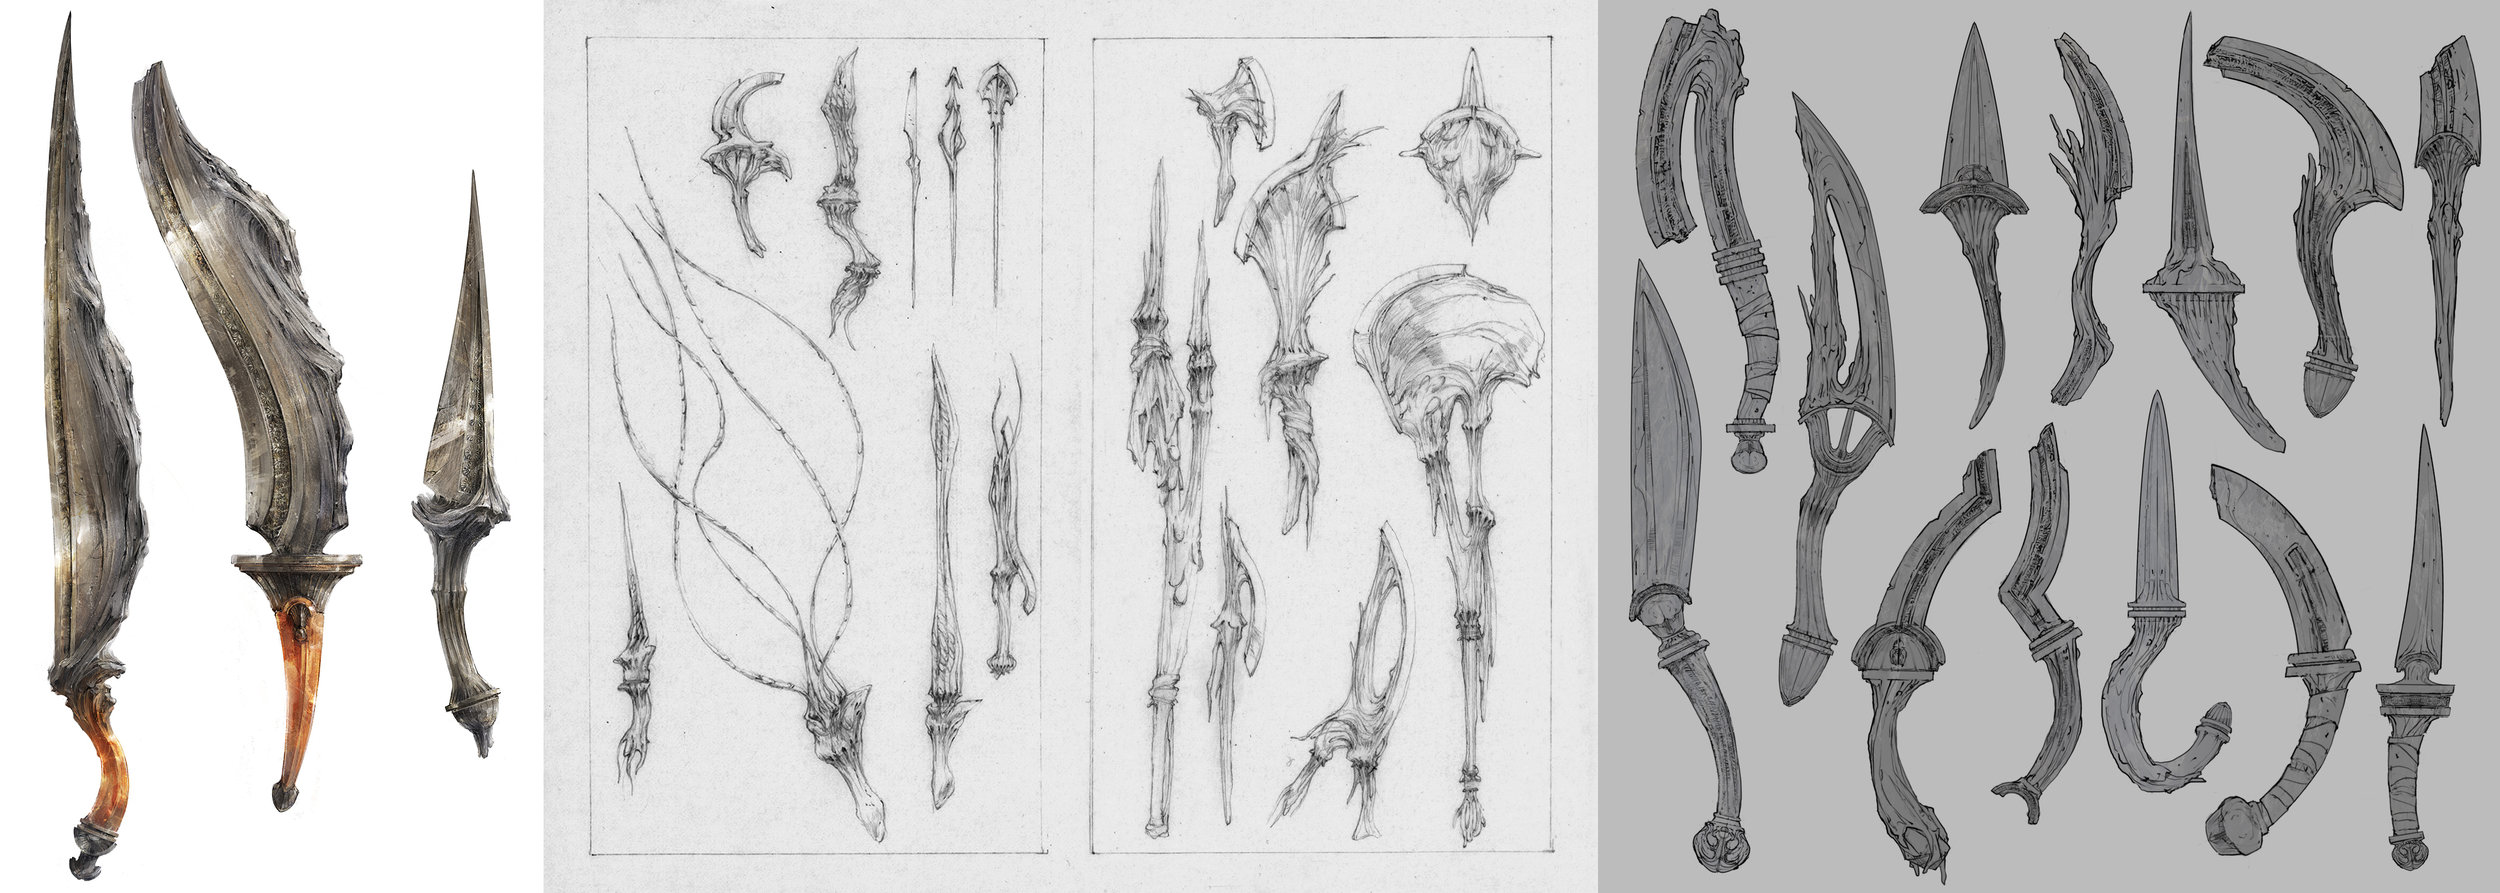 26 - Props Asura Weapons Swords 2.jpg